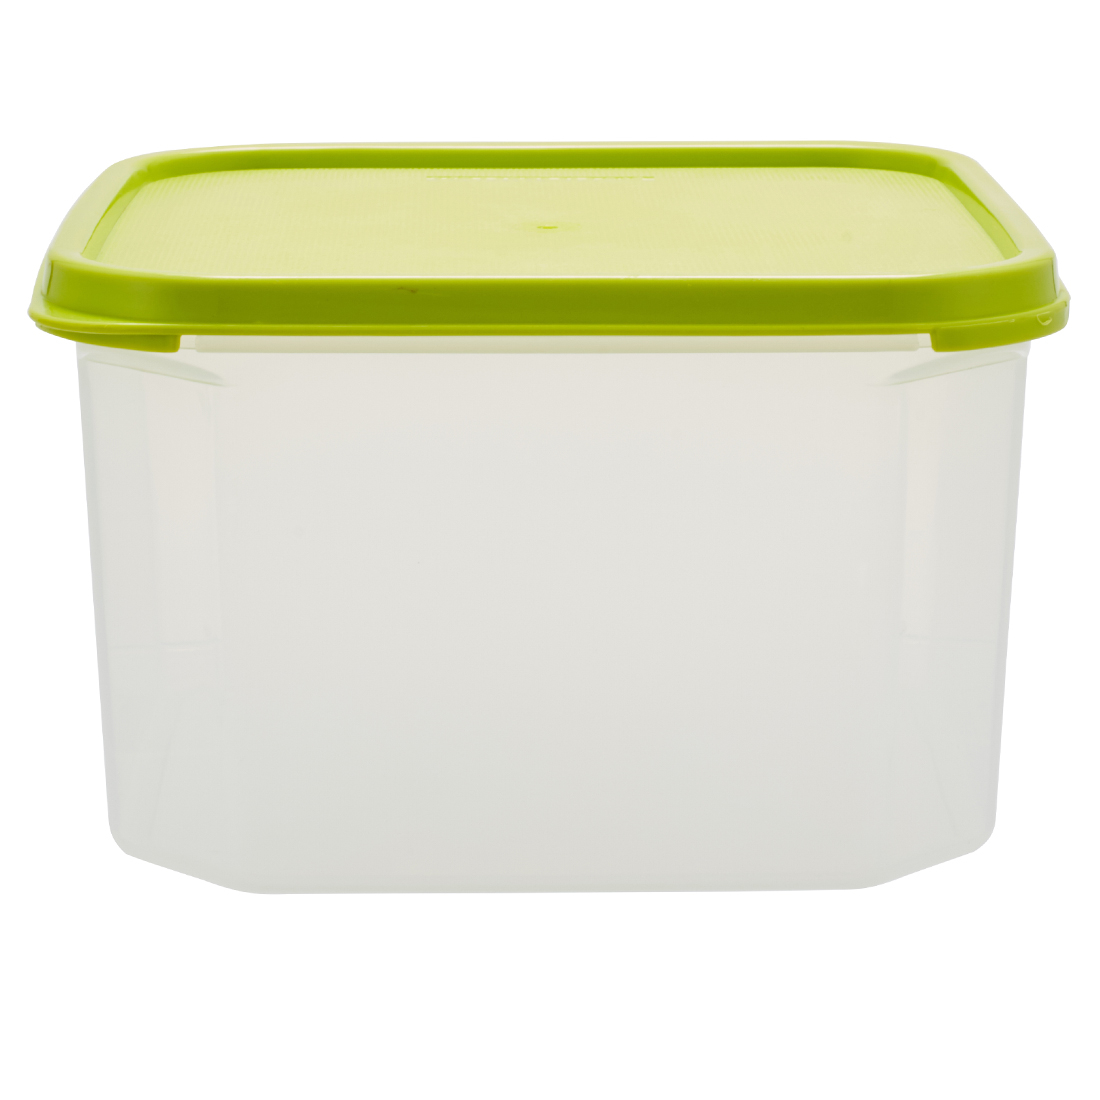 Kitchen Modular Square 2.8 Ltr Green Plastic Containers in Green Colour by Living Essence